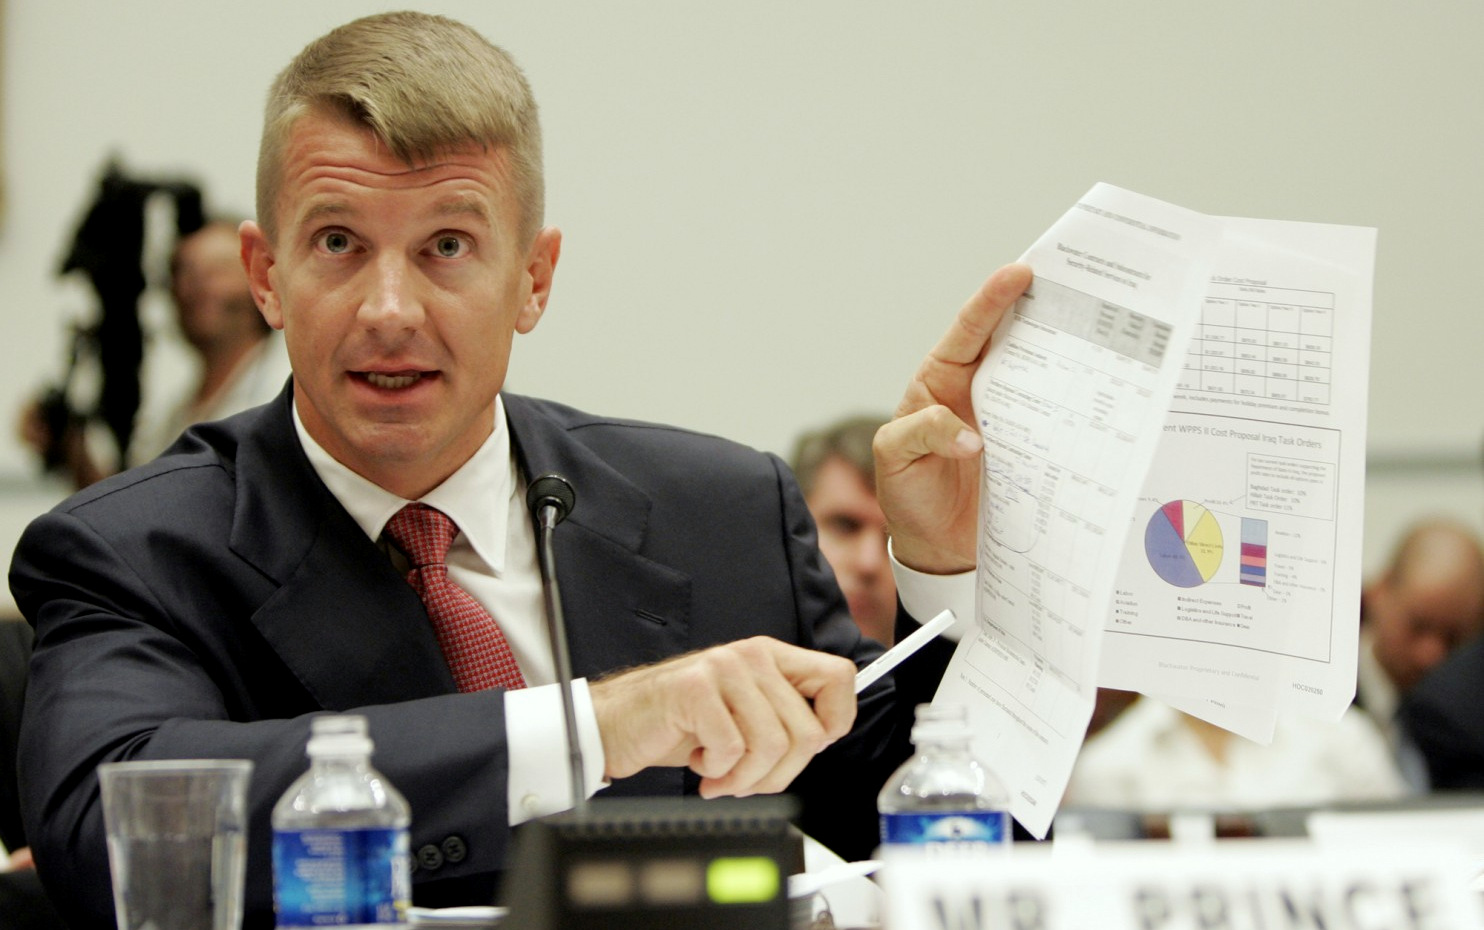 Blackwater founder Erik Prince testifies before a House committee examining the mission and performance of  private military contractors in Iraq and Afghanistan, Oct. 2, 2007. (Susan Walsh/AP)